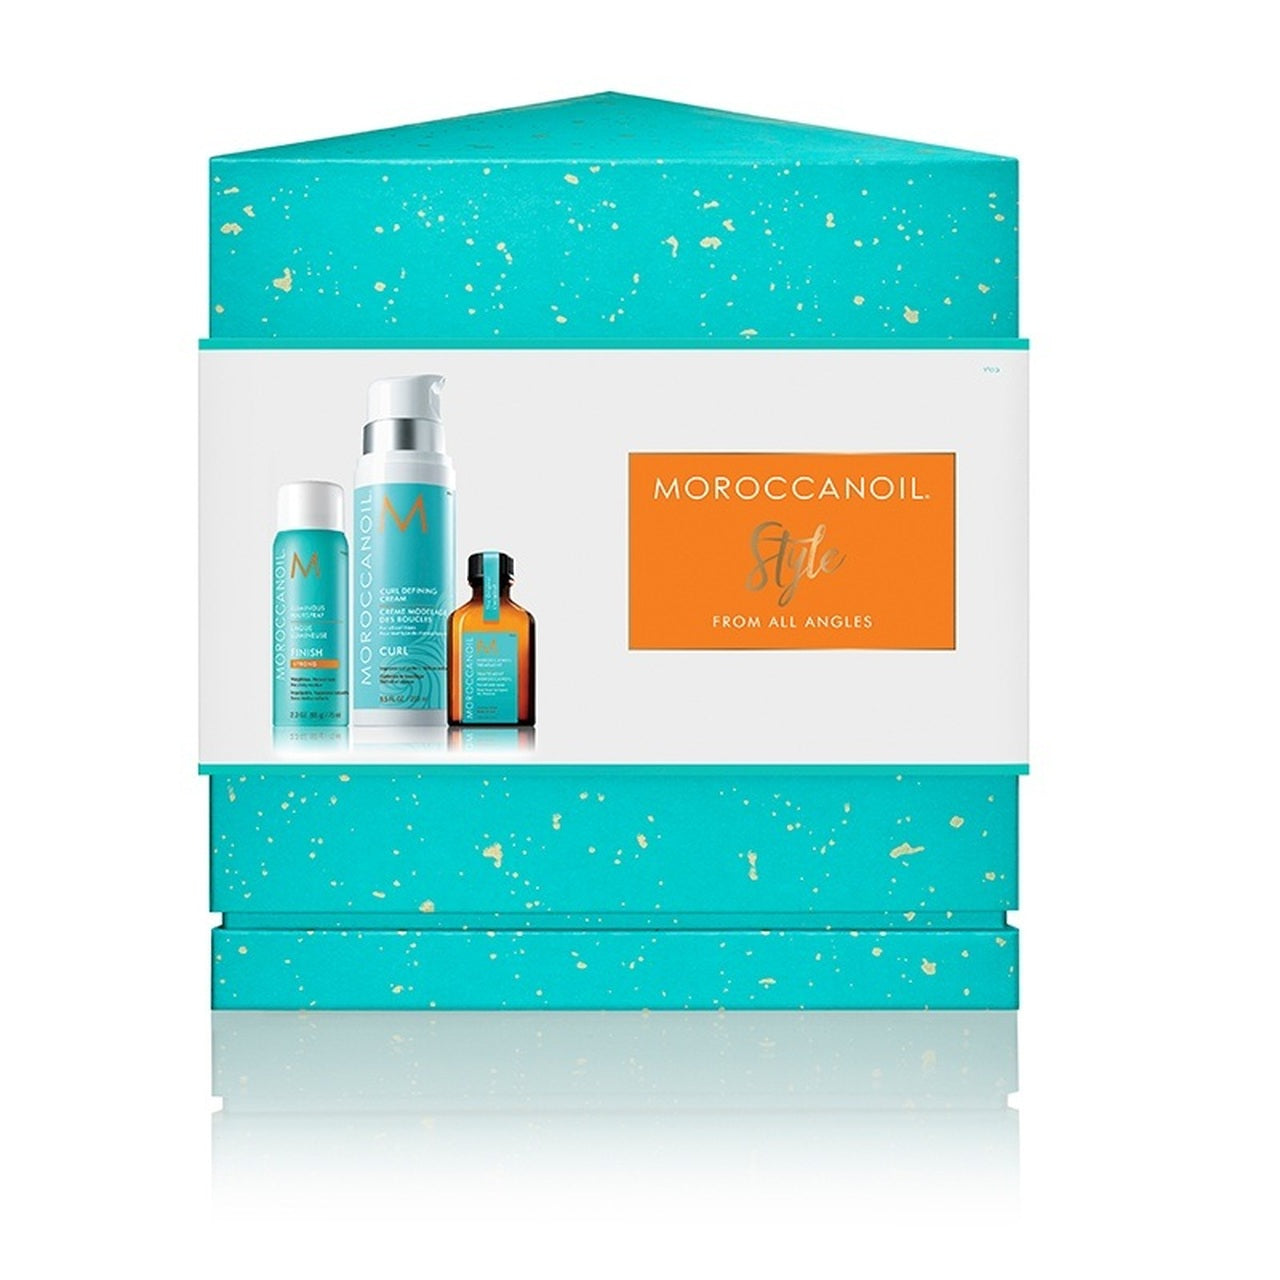 Moroccanoil Gift of Beauty Style